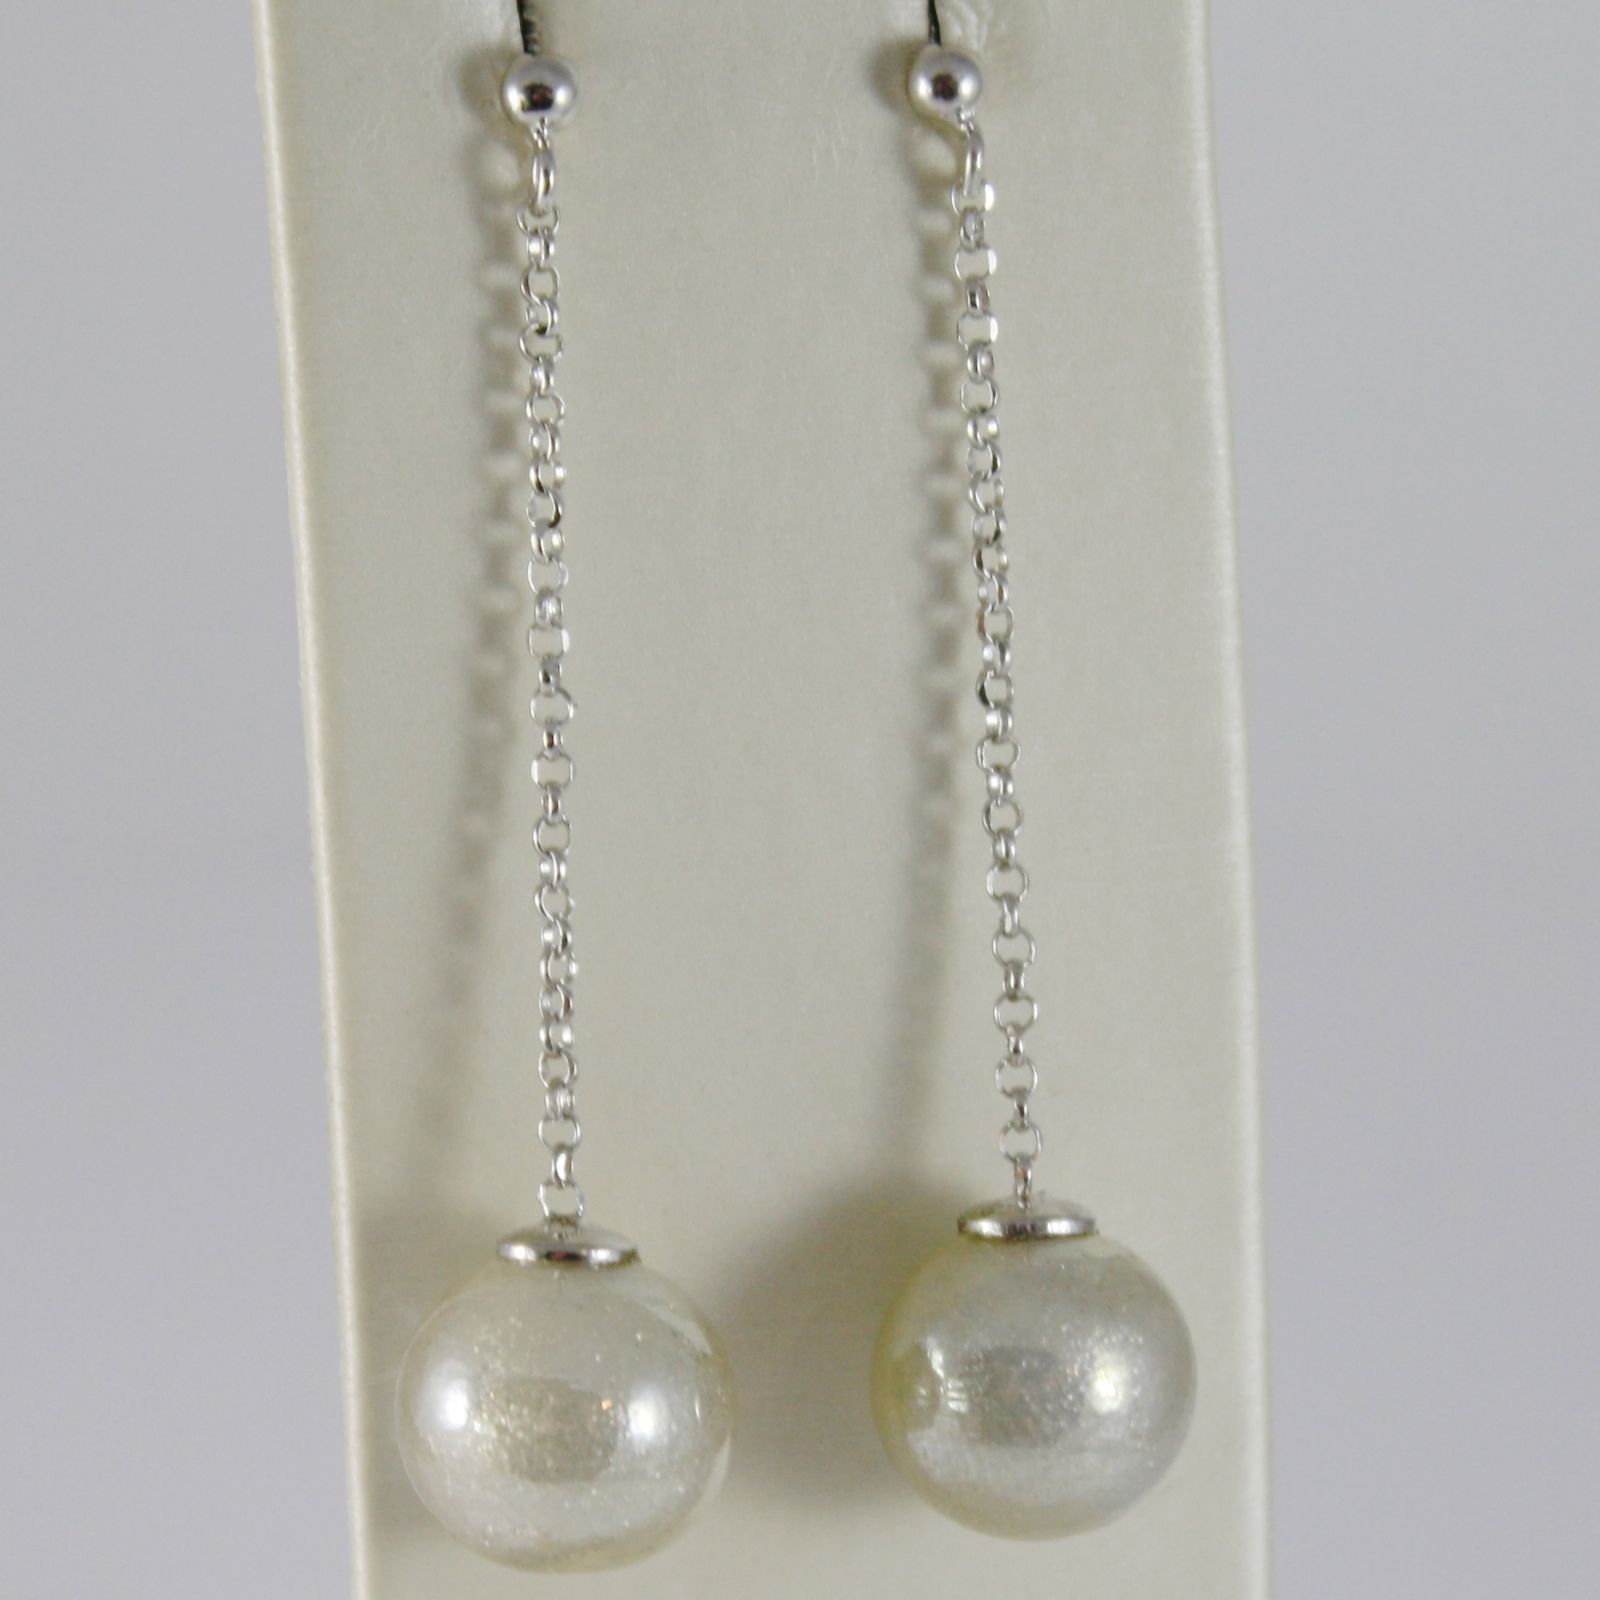 ANTICA MURRINA VENEZIA 12 MM GRAY SPHERE BALLS PENDANT 5.3 CM EARRINGS